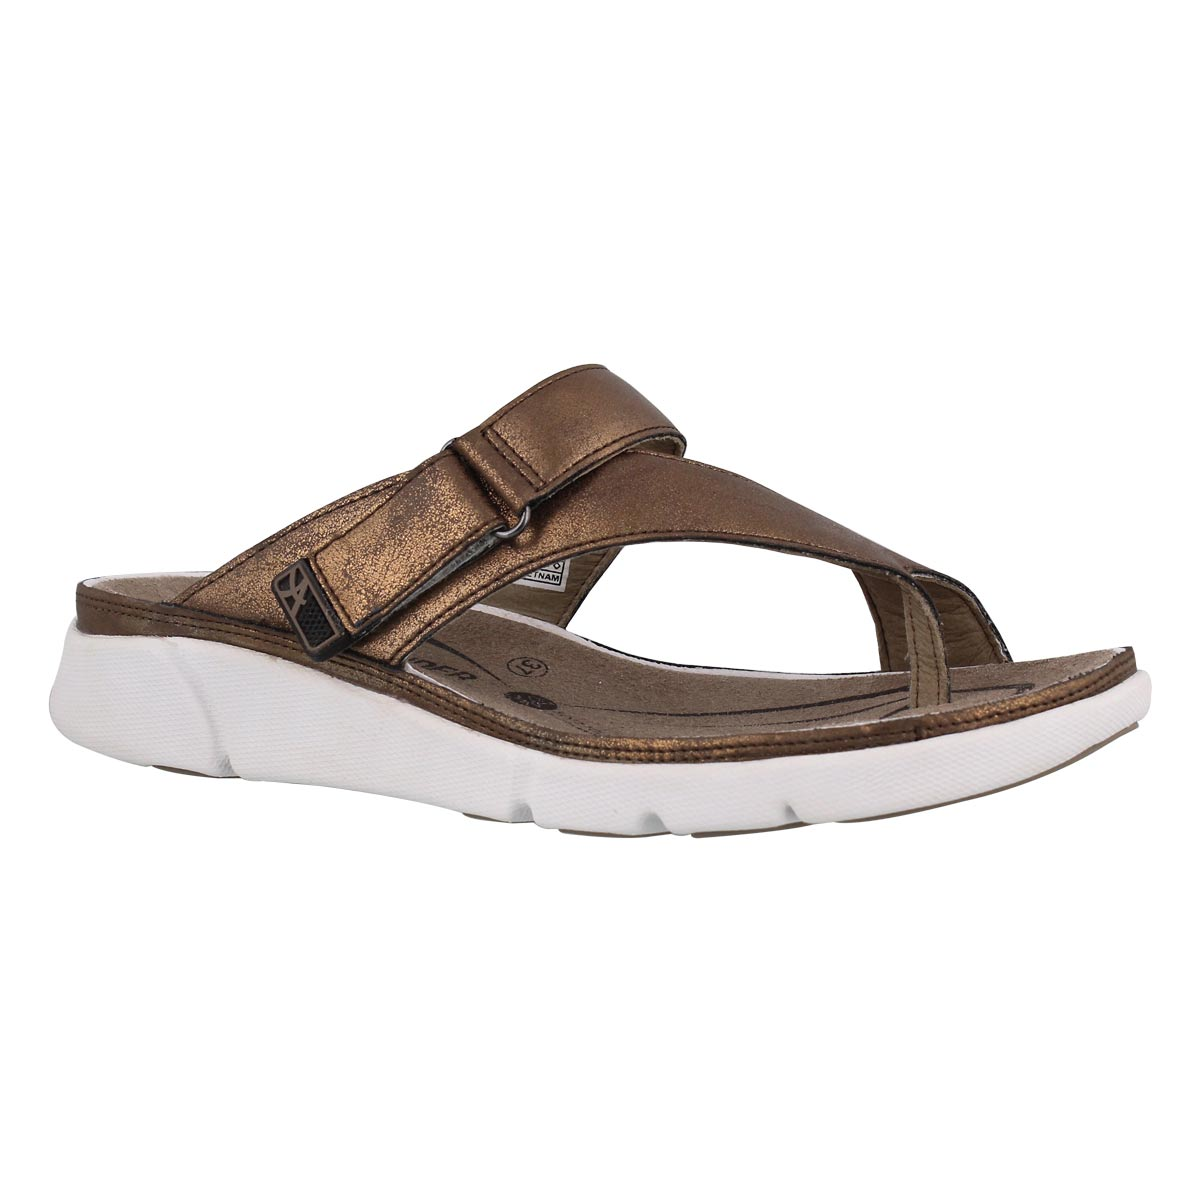 Women's TOKARA bronze thong sandals